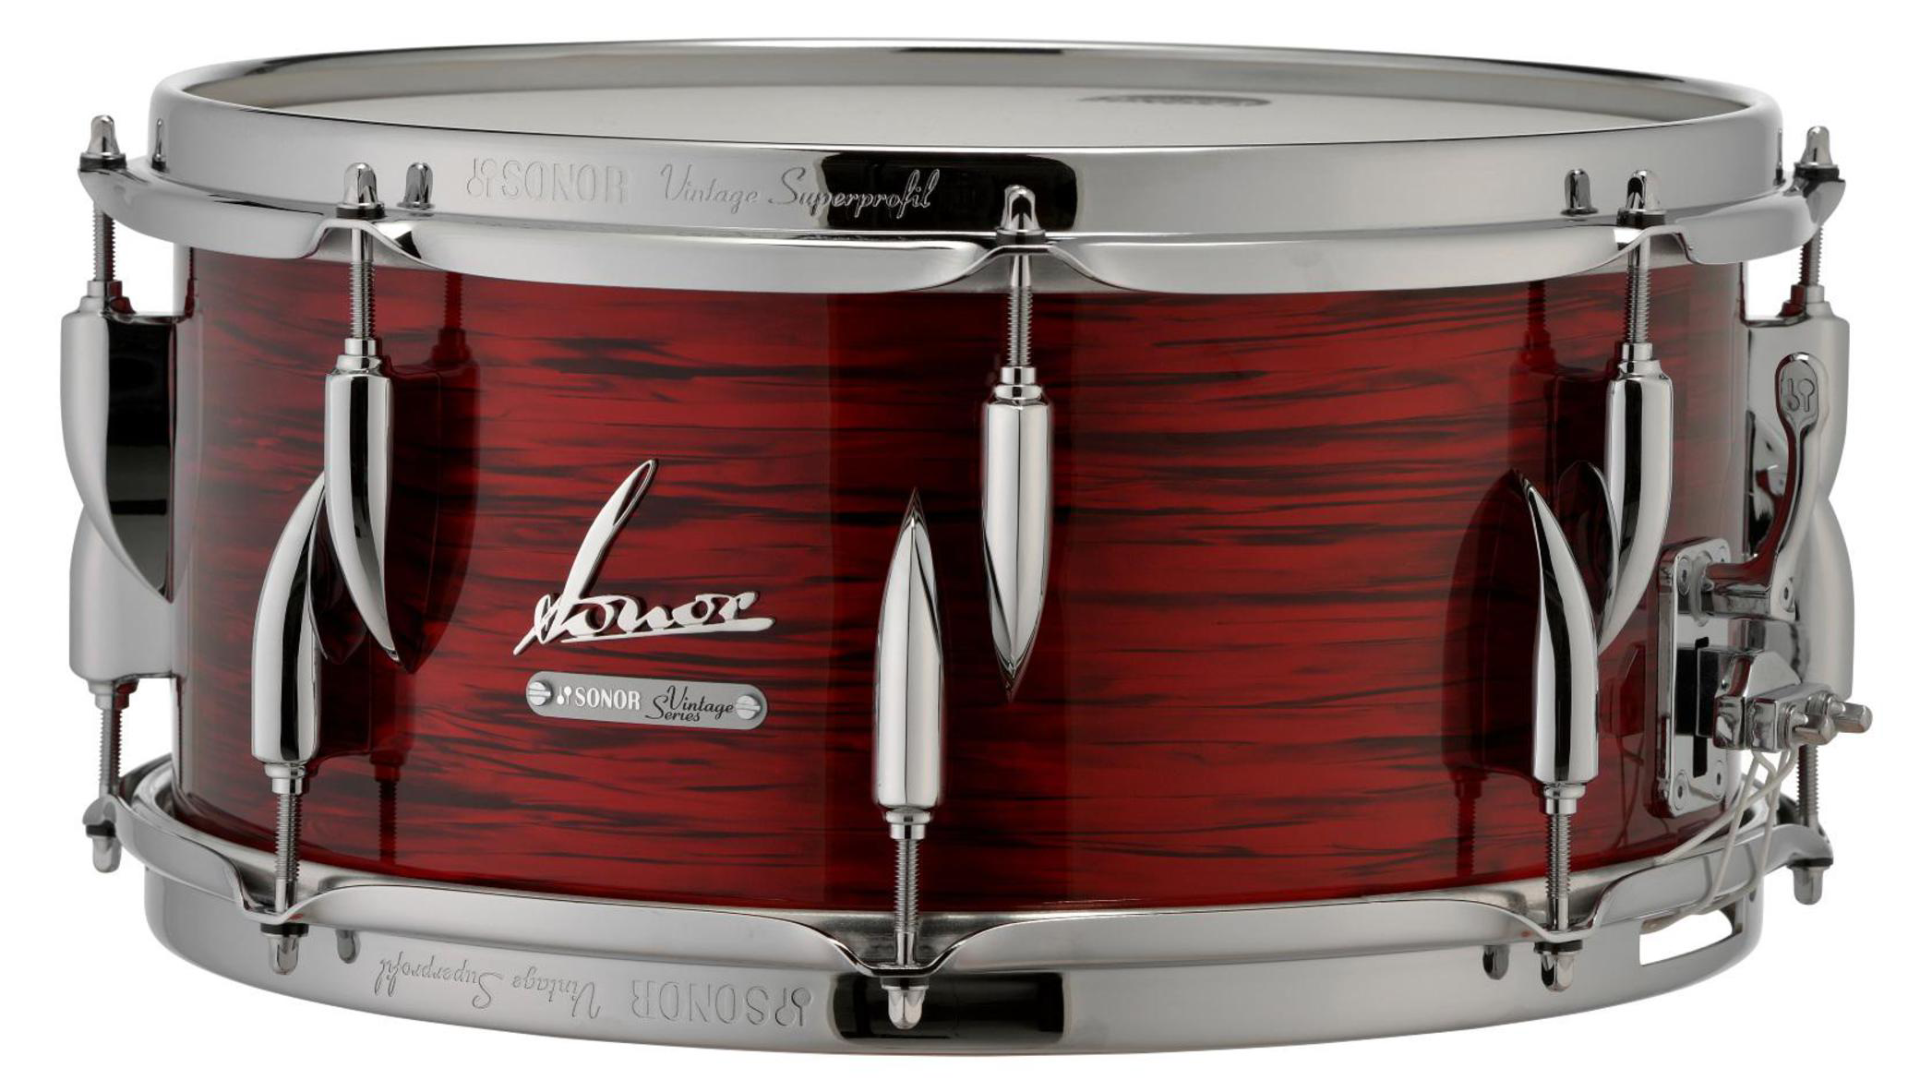 Sonor Vintage Series Snare Drum 14 x 6.5 in. Vintage Red Oyster